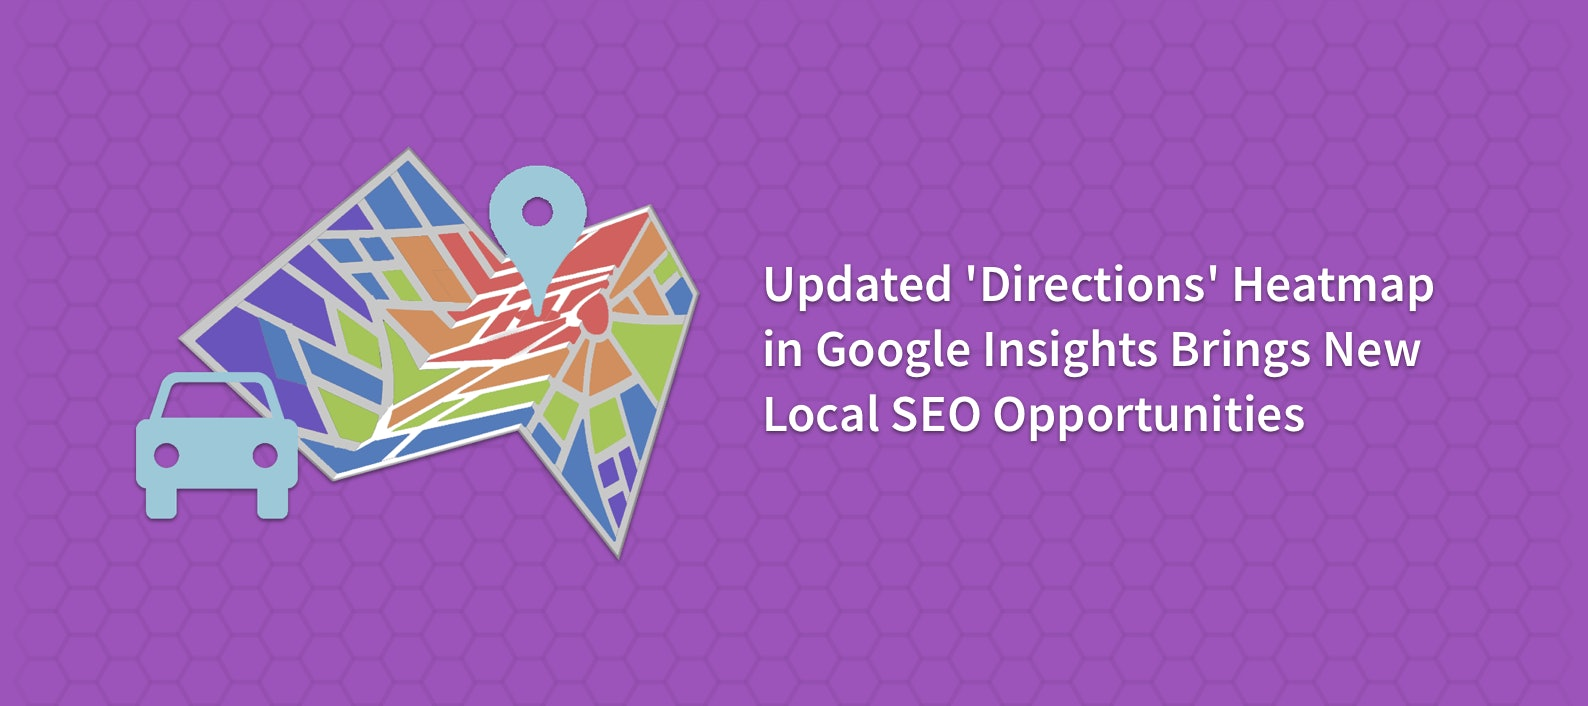 Updated 'Directions' Heatmap in Google Insights Brings New Local SEO Opportunities